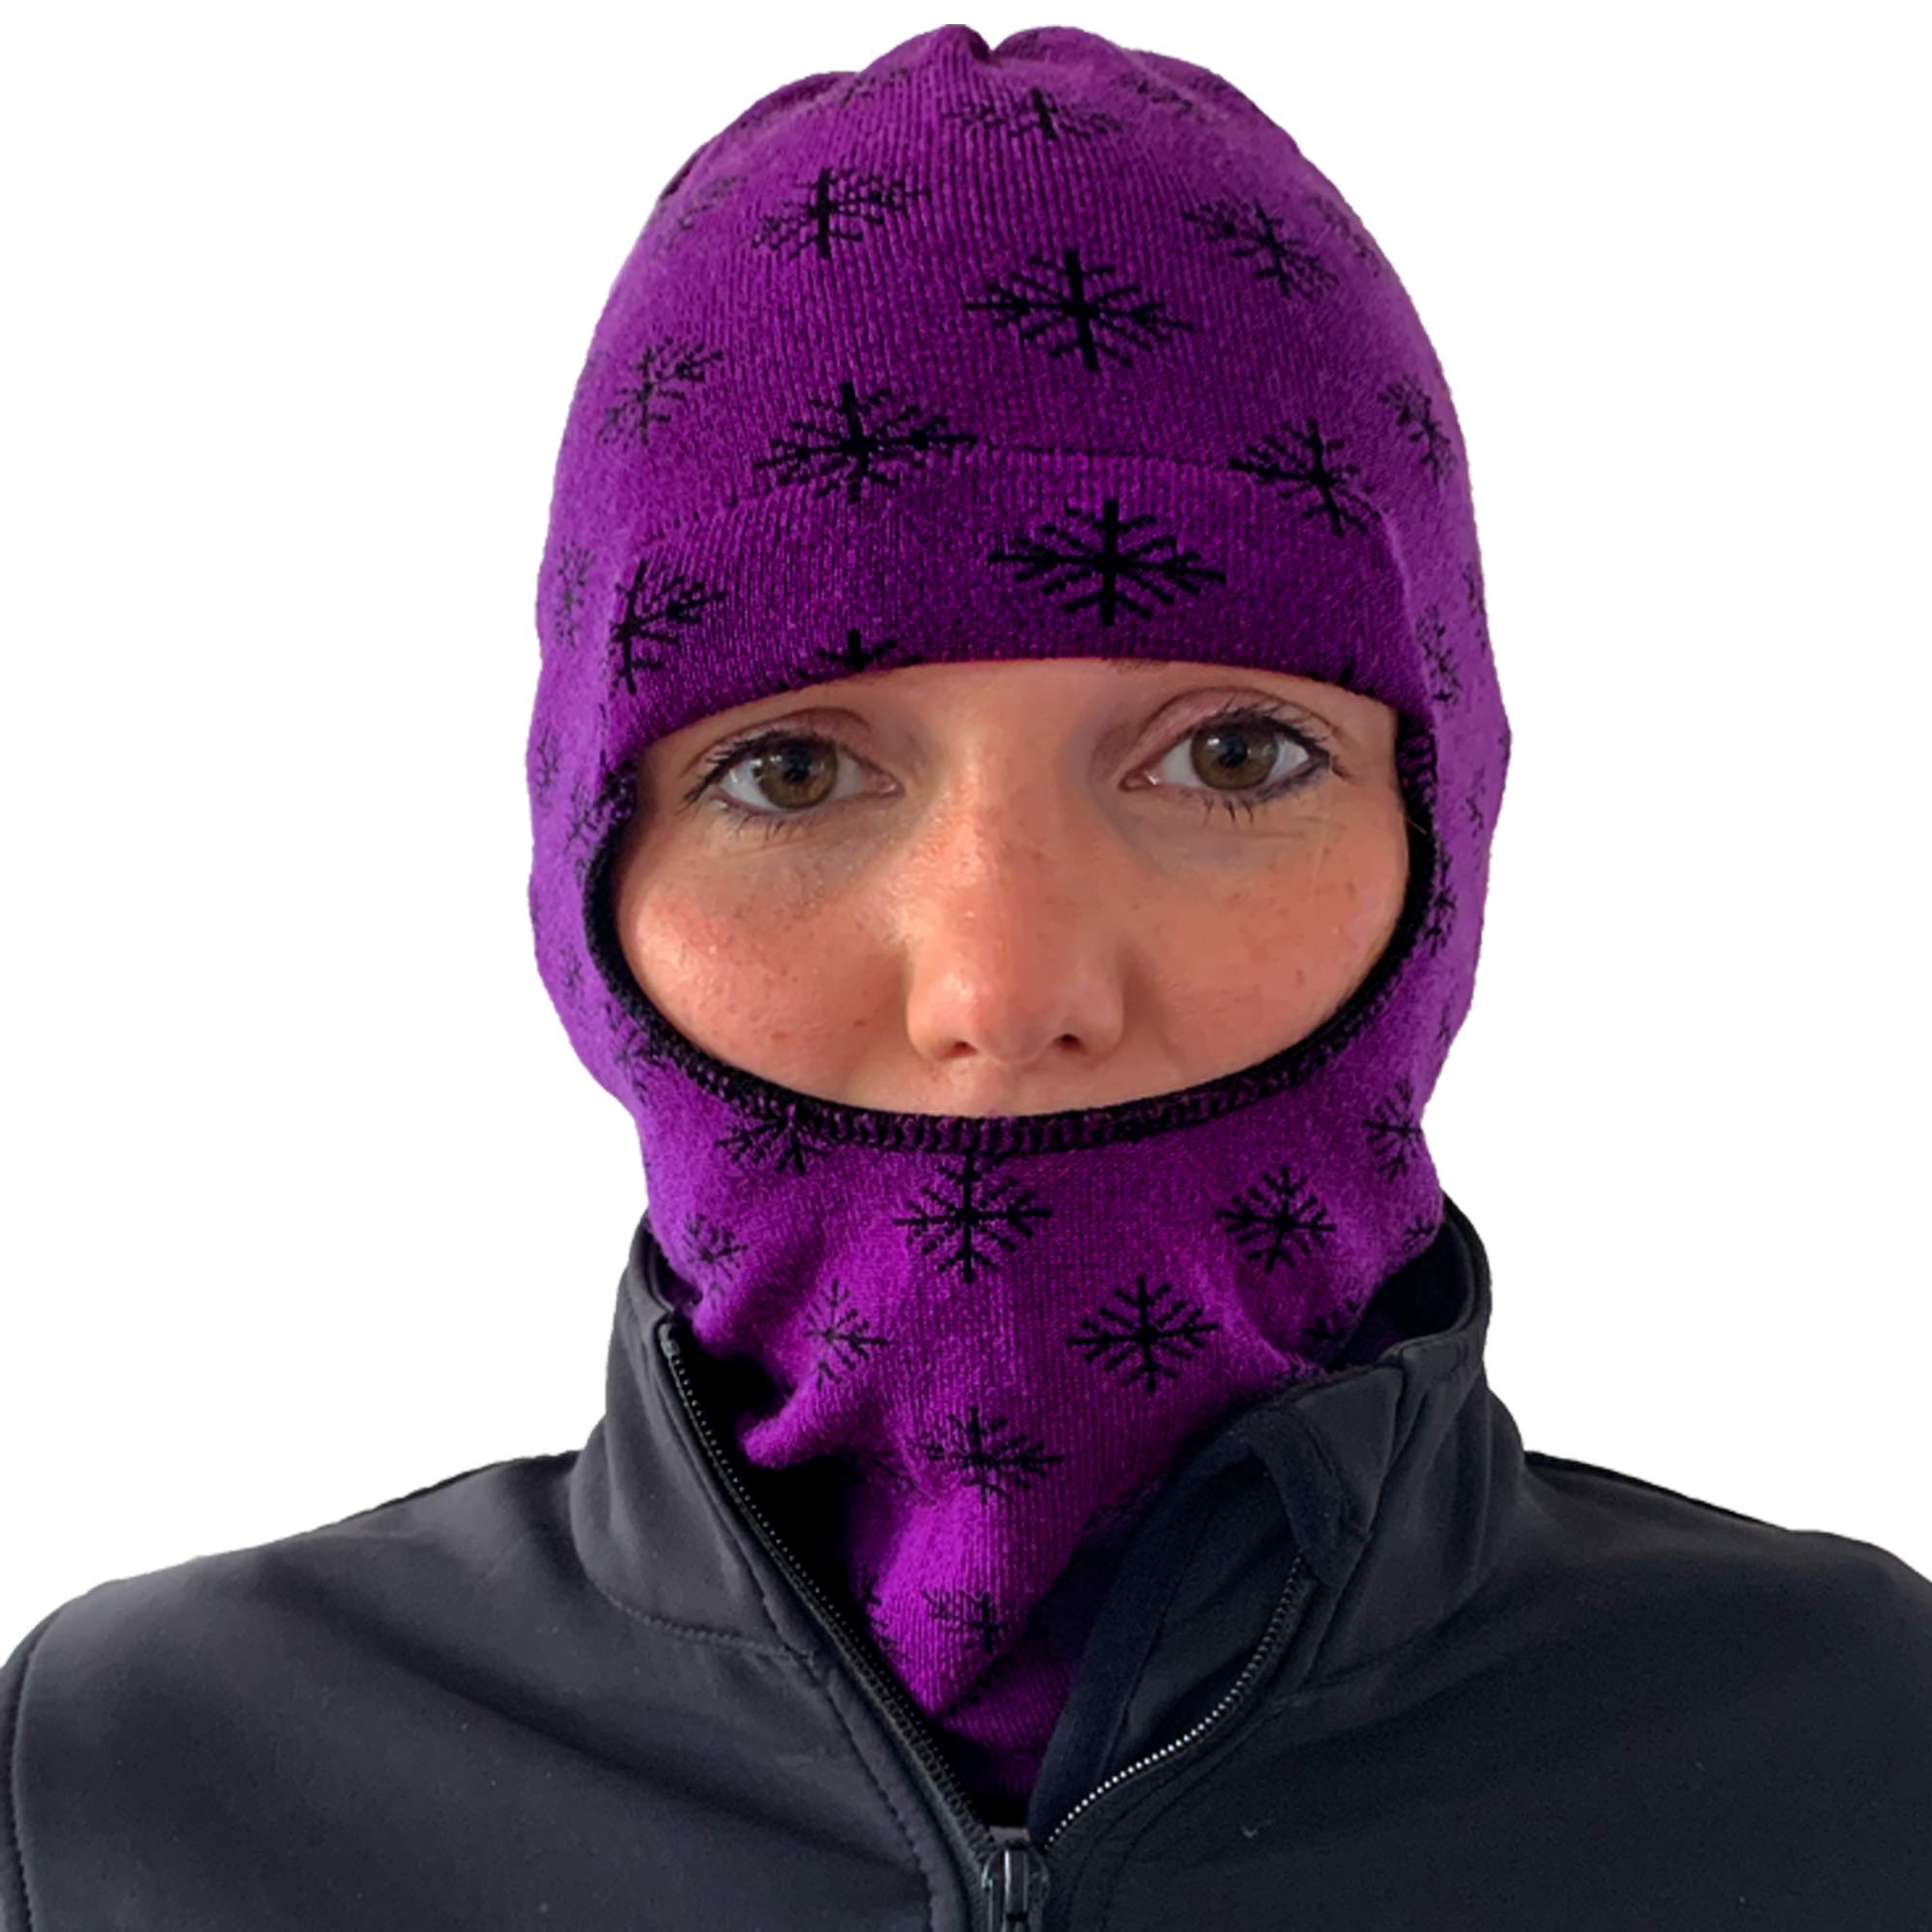 Balaclava Outdoor Wear Hat Cap Unisex New Zealand Made Merino Wool Luxurious Warmth and Soft with a Light Weight Stretchy Face Mask Stylish Unique Moisture Wicking with Thermal Properties Purple by Truzealia (Image #1)